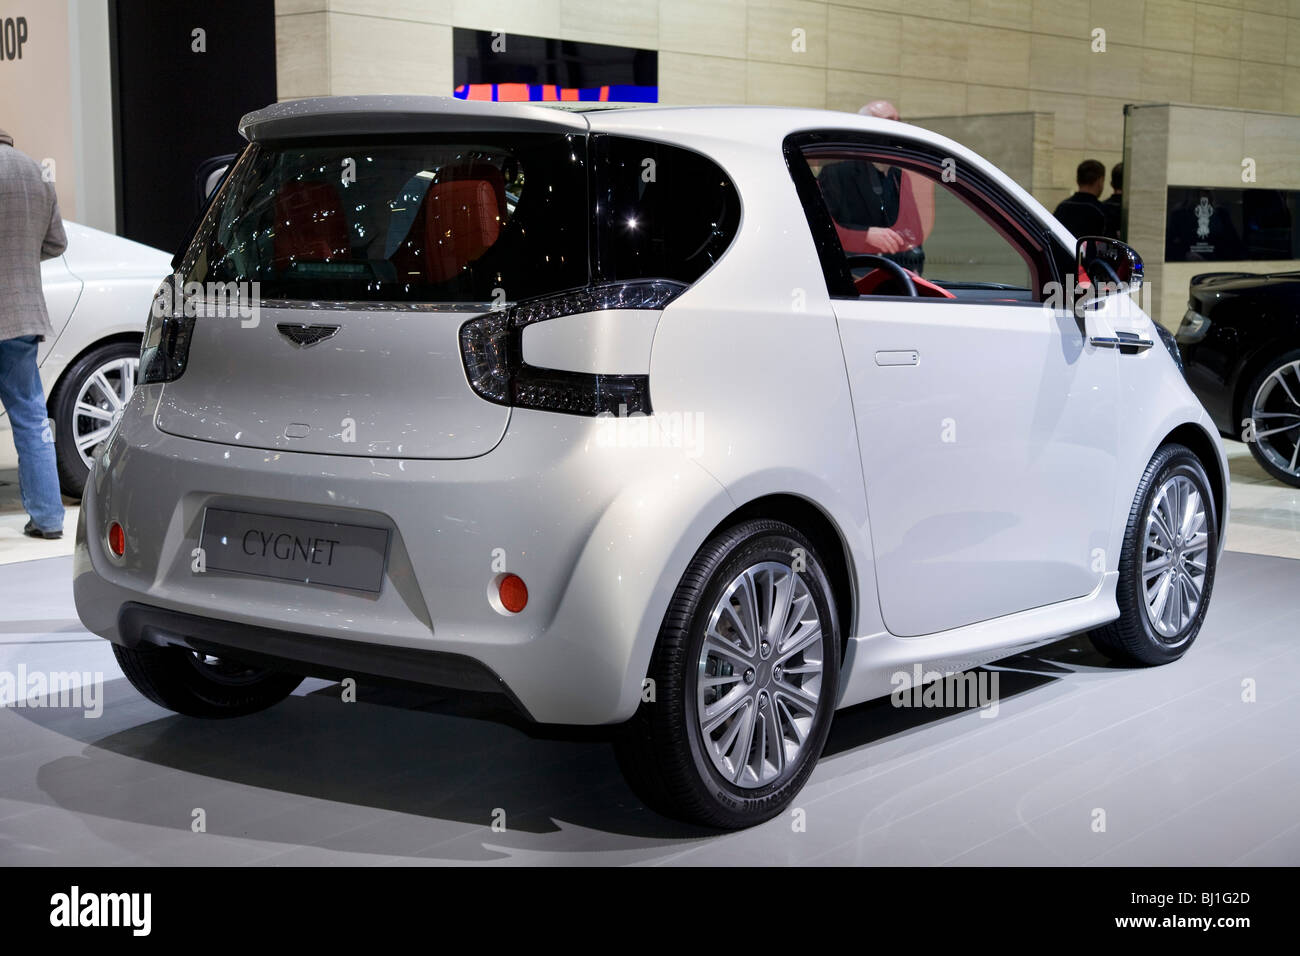 Delicieux Aston Martin Cygnet Toyota IQ Based City Car At A Motor Show